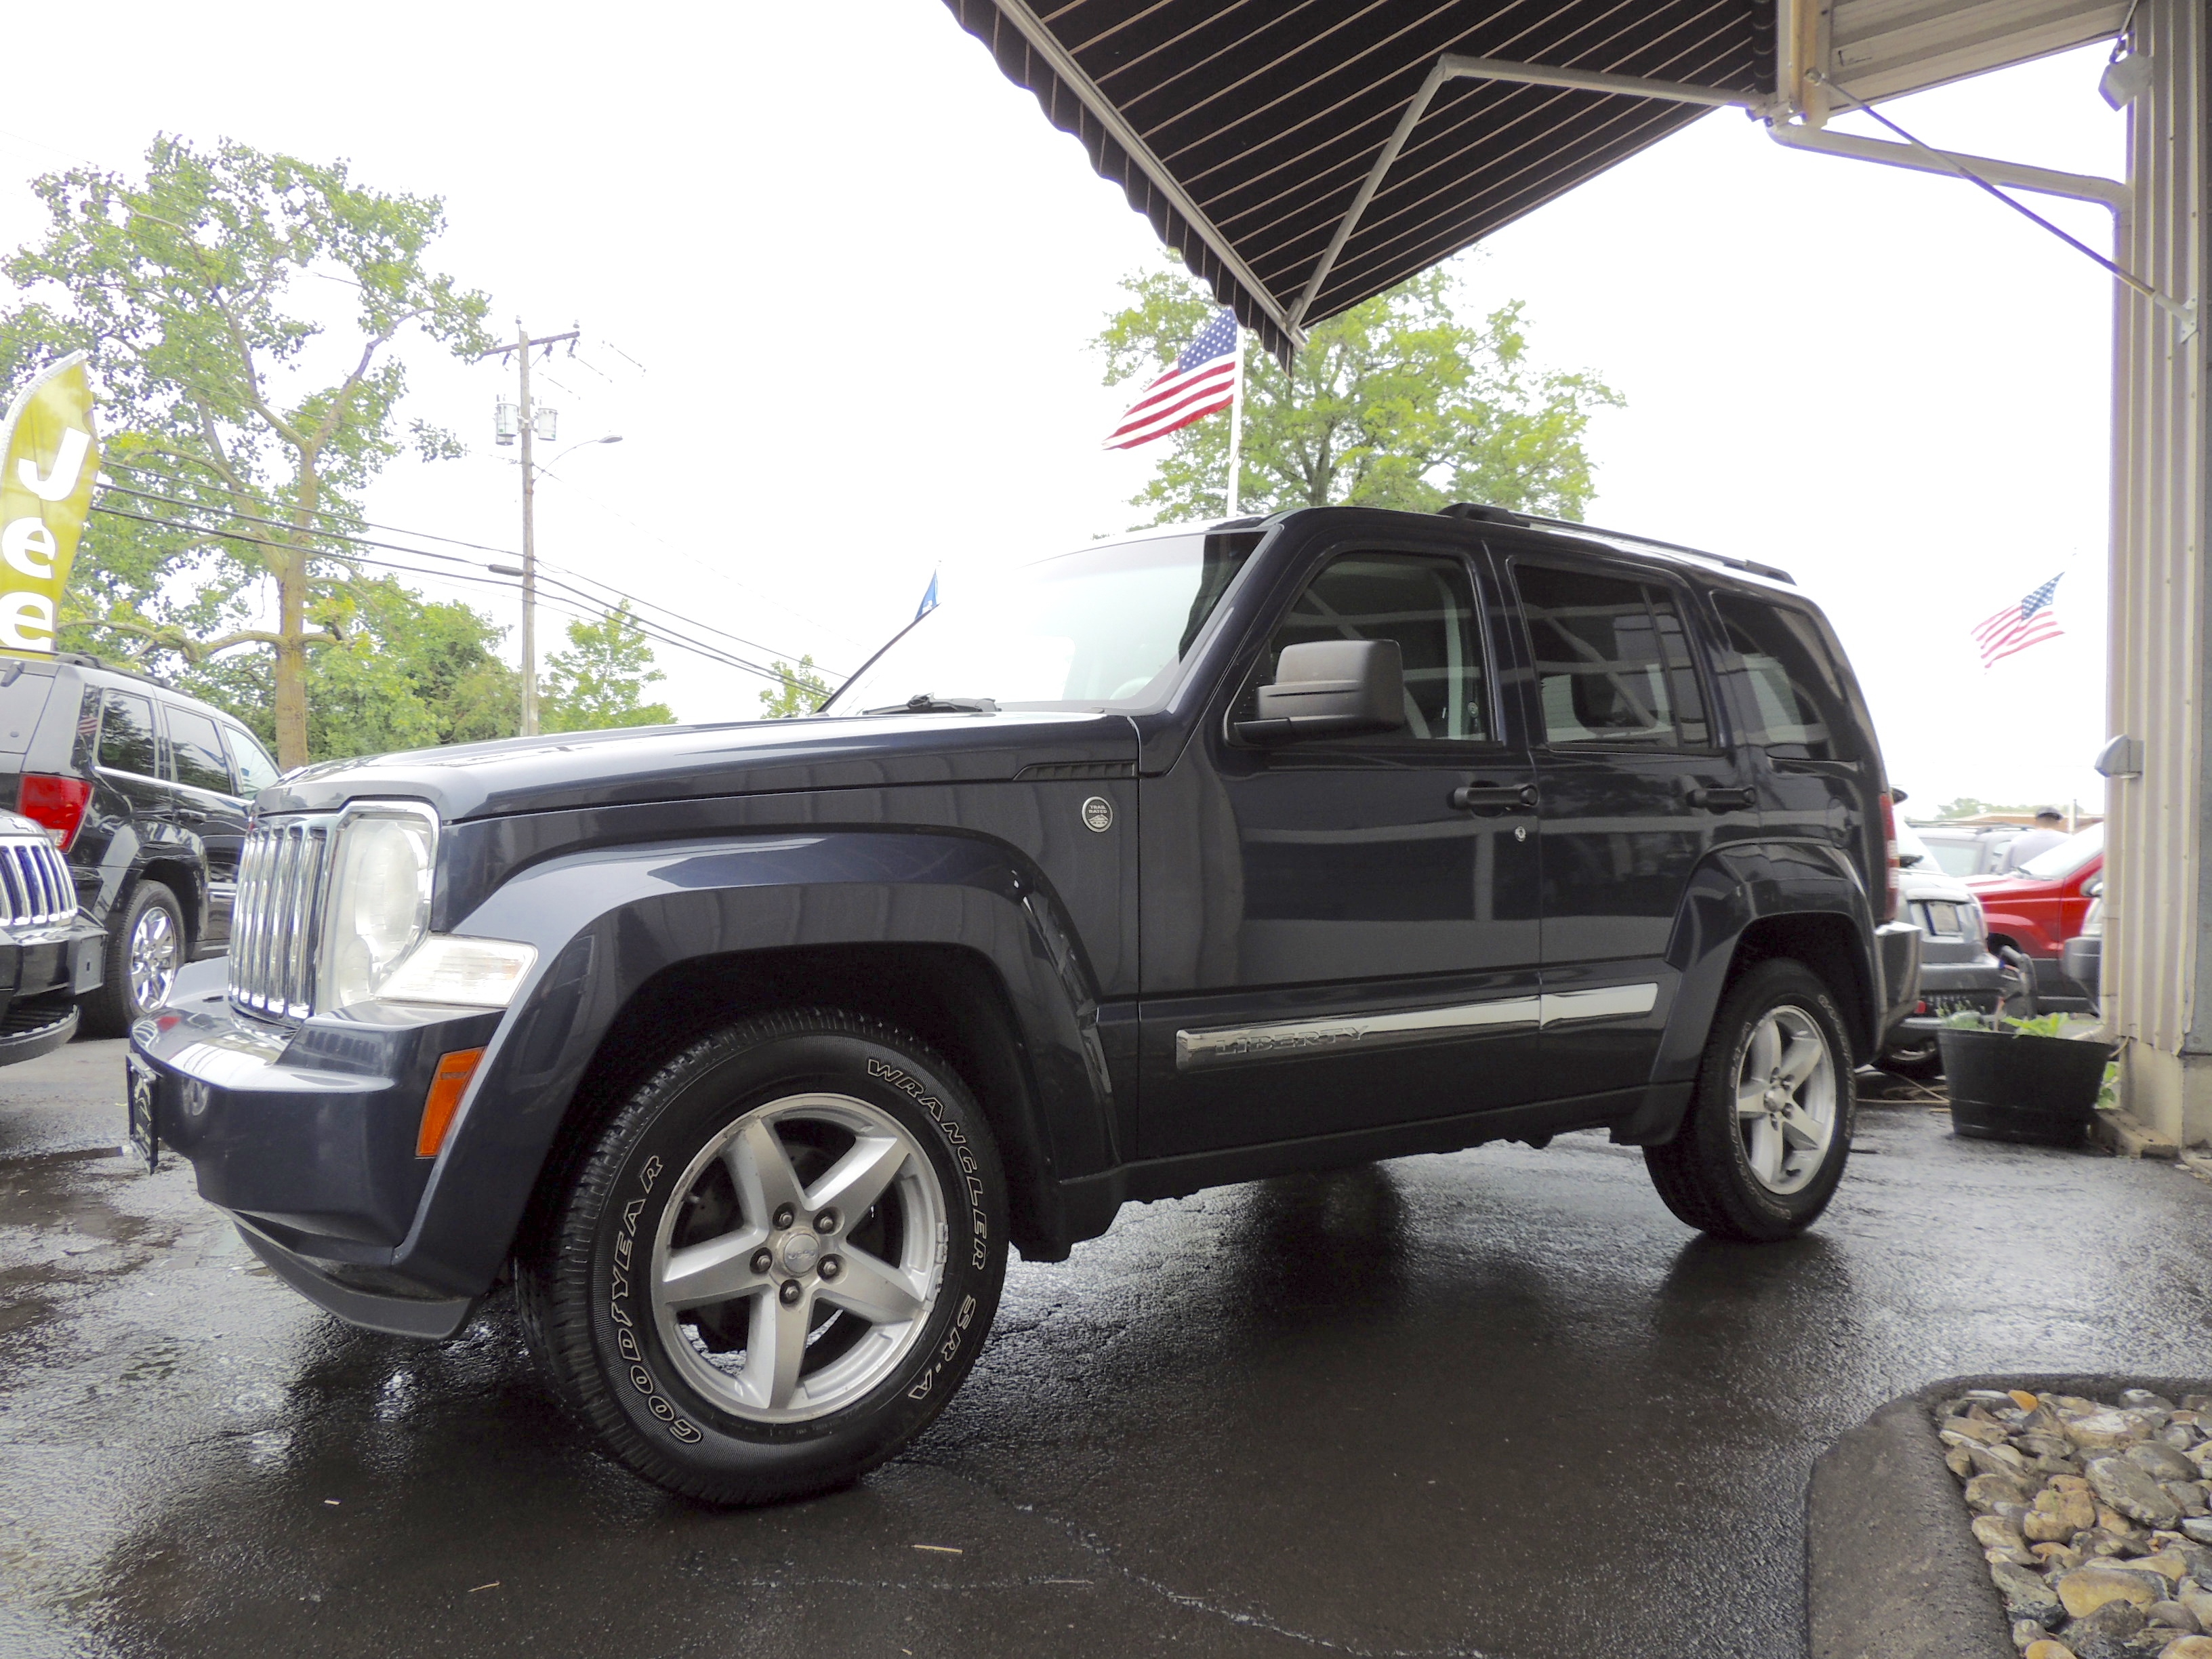 2002 Jeep Liberty For Sale >> 2008 Jeep Liberty Limited Edition   Shoreline Auto Sales